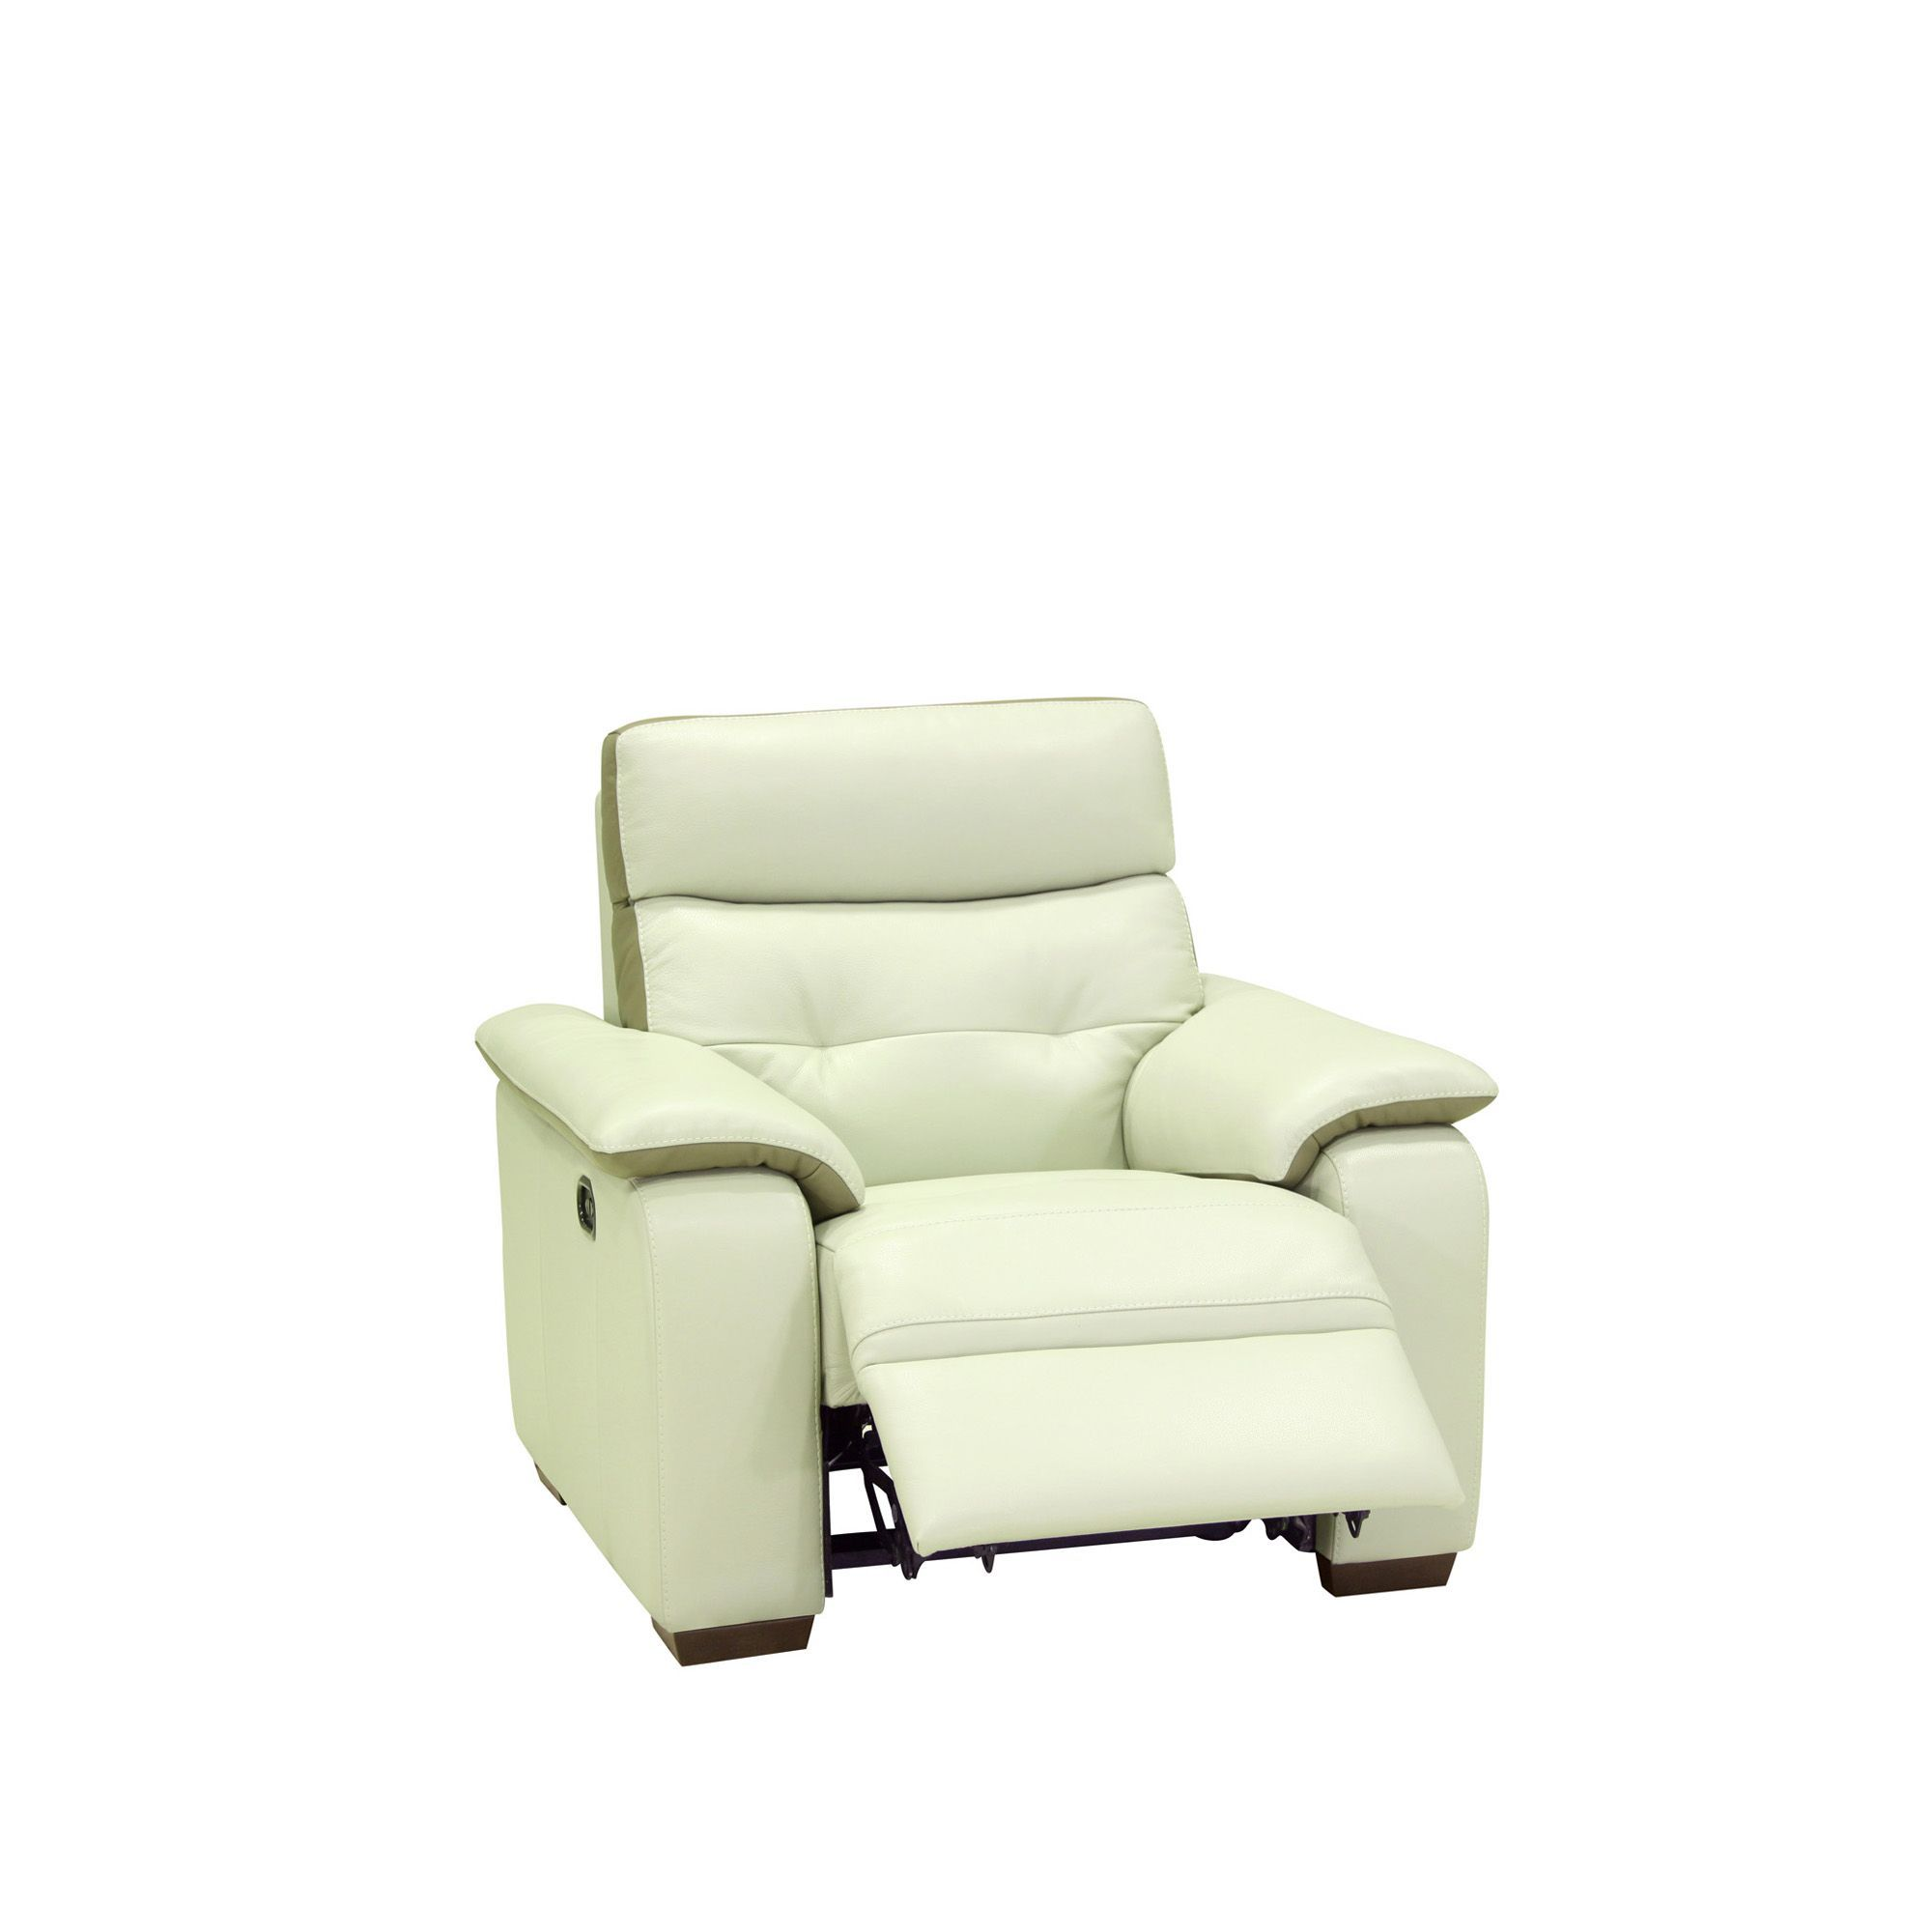 Cookes Collection Hobart Manual Recliner Armchair All